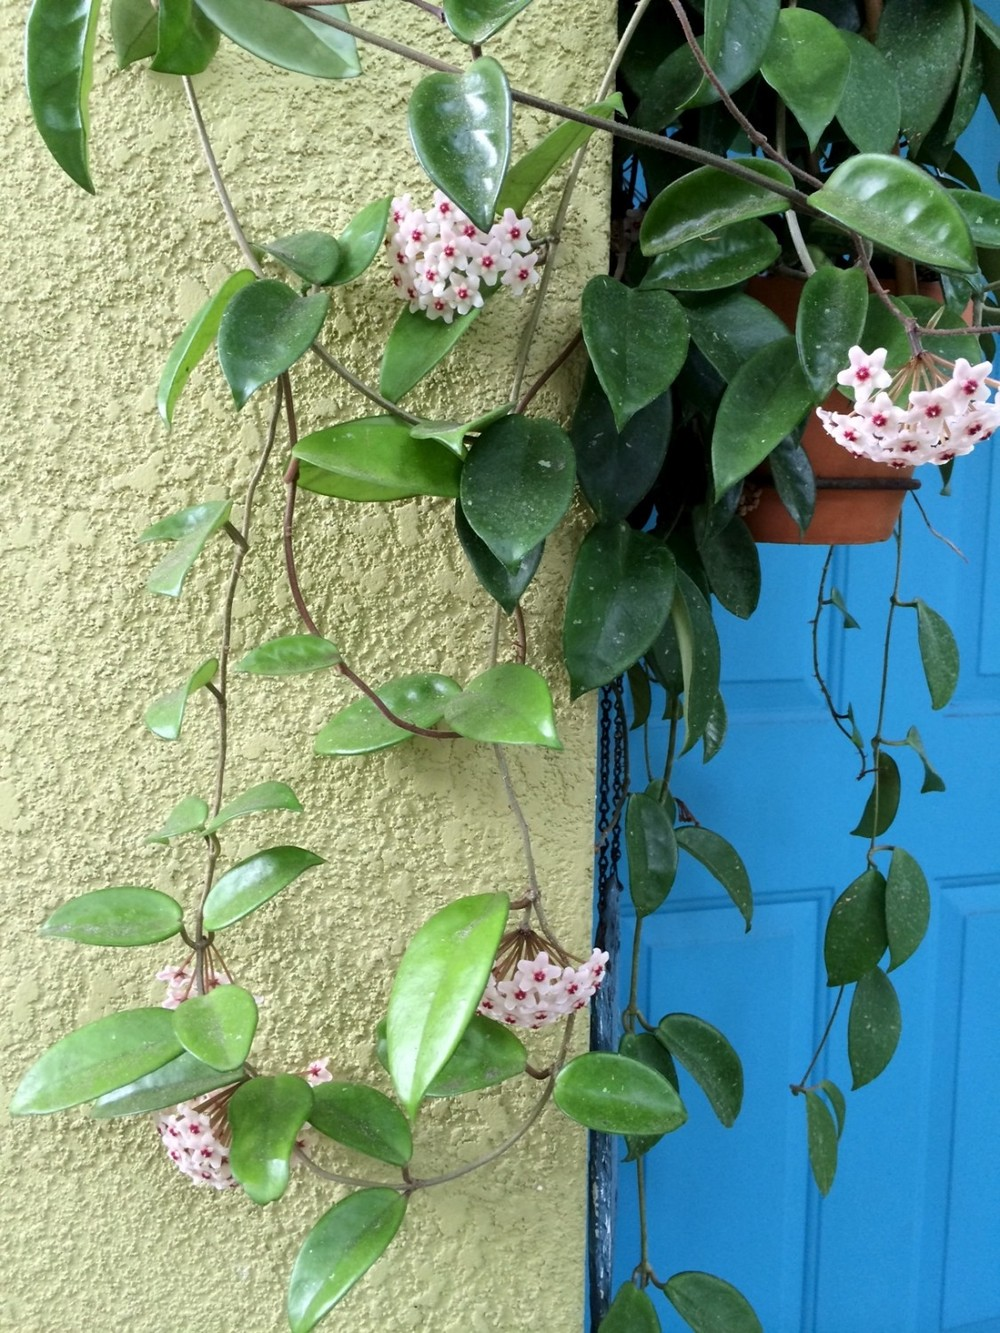 Wax Plant, Hoya Canosa / Photography by Debra S. Walling